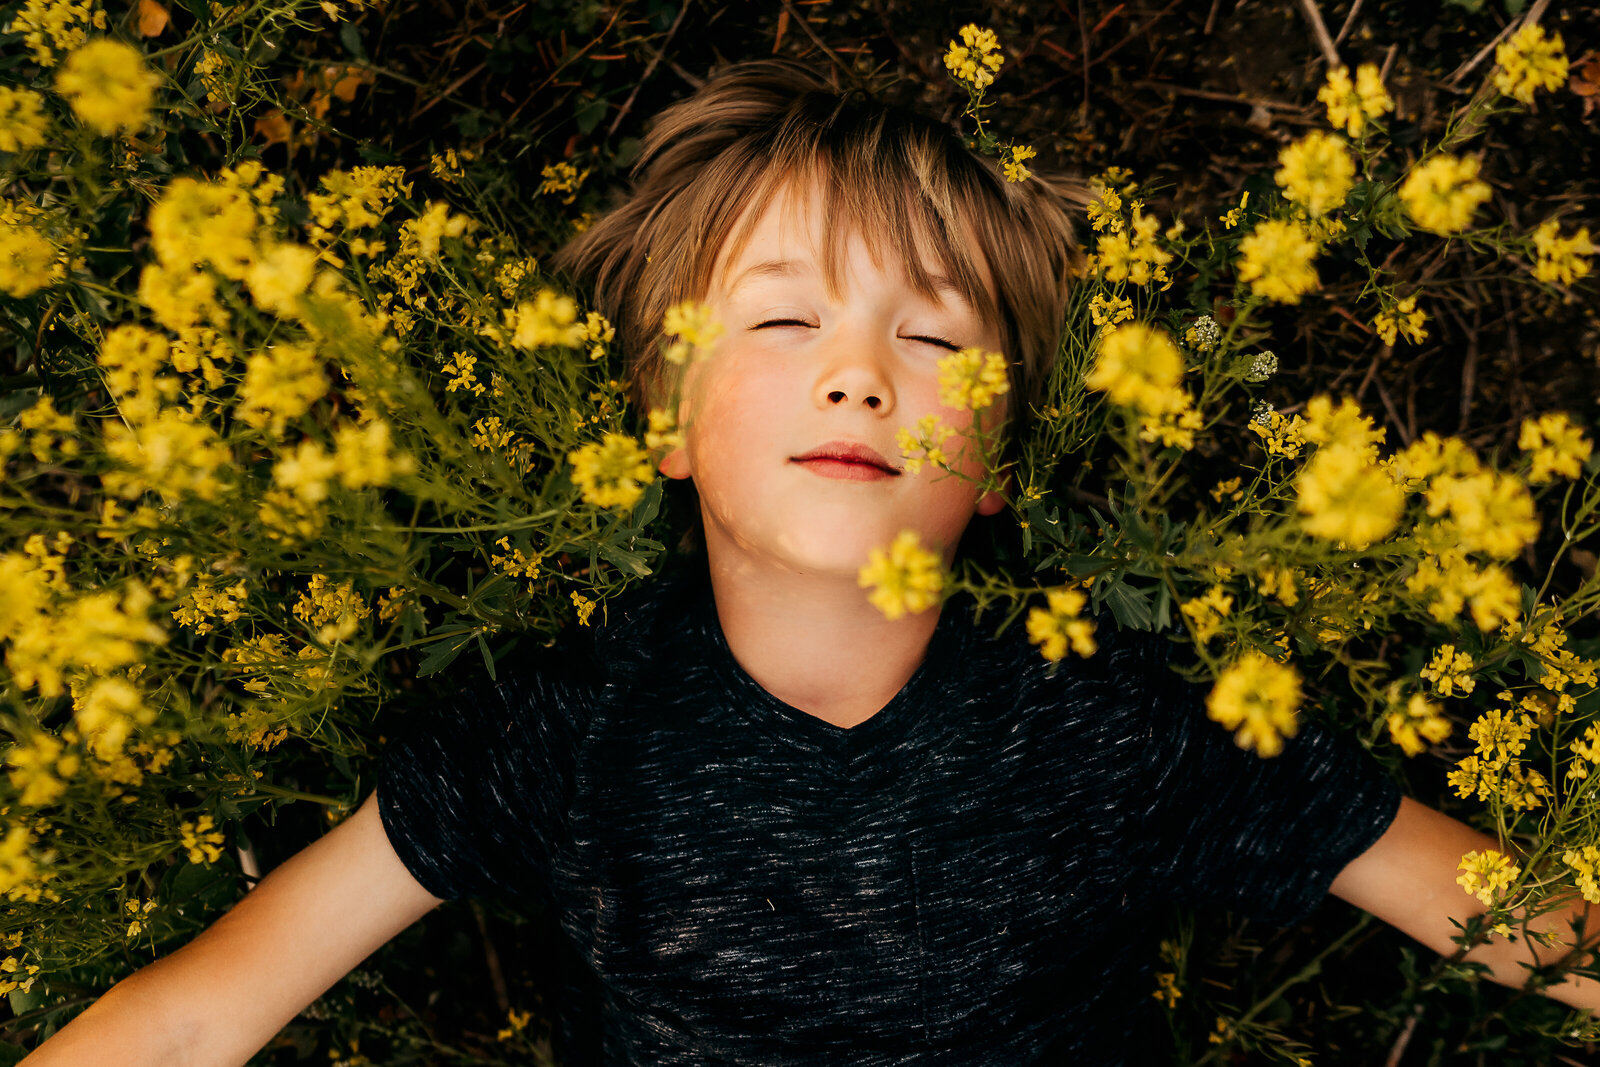 boy laying in yellow flower field